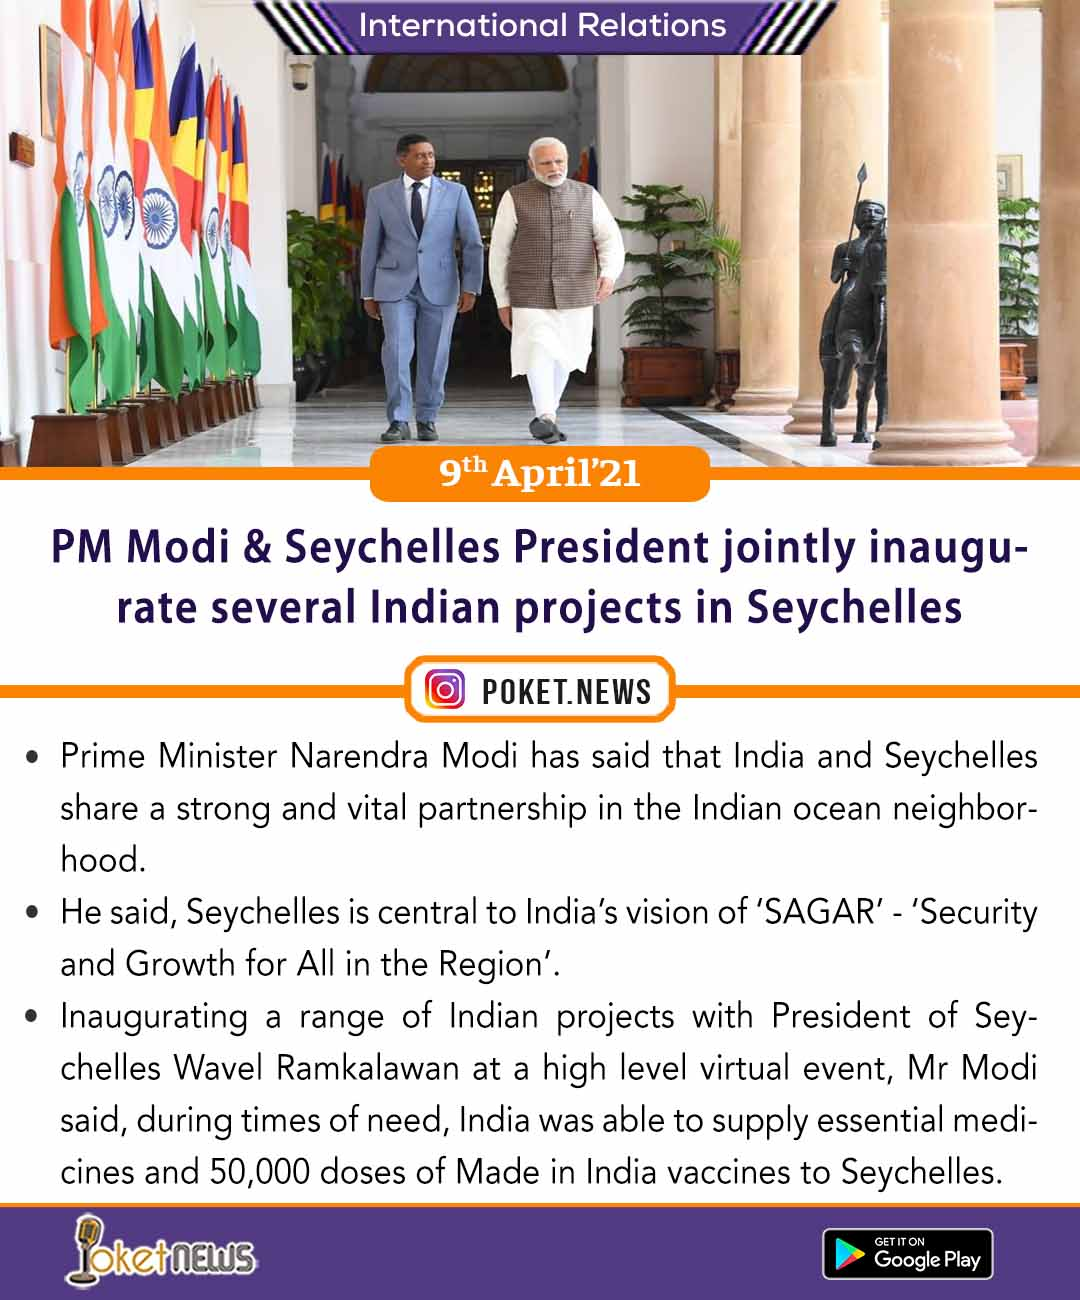 PM Modi & Seychelles President jointly inaugurate several Indian projects in Seychelles